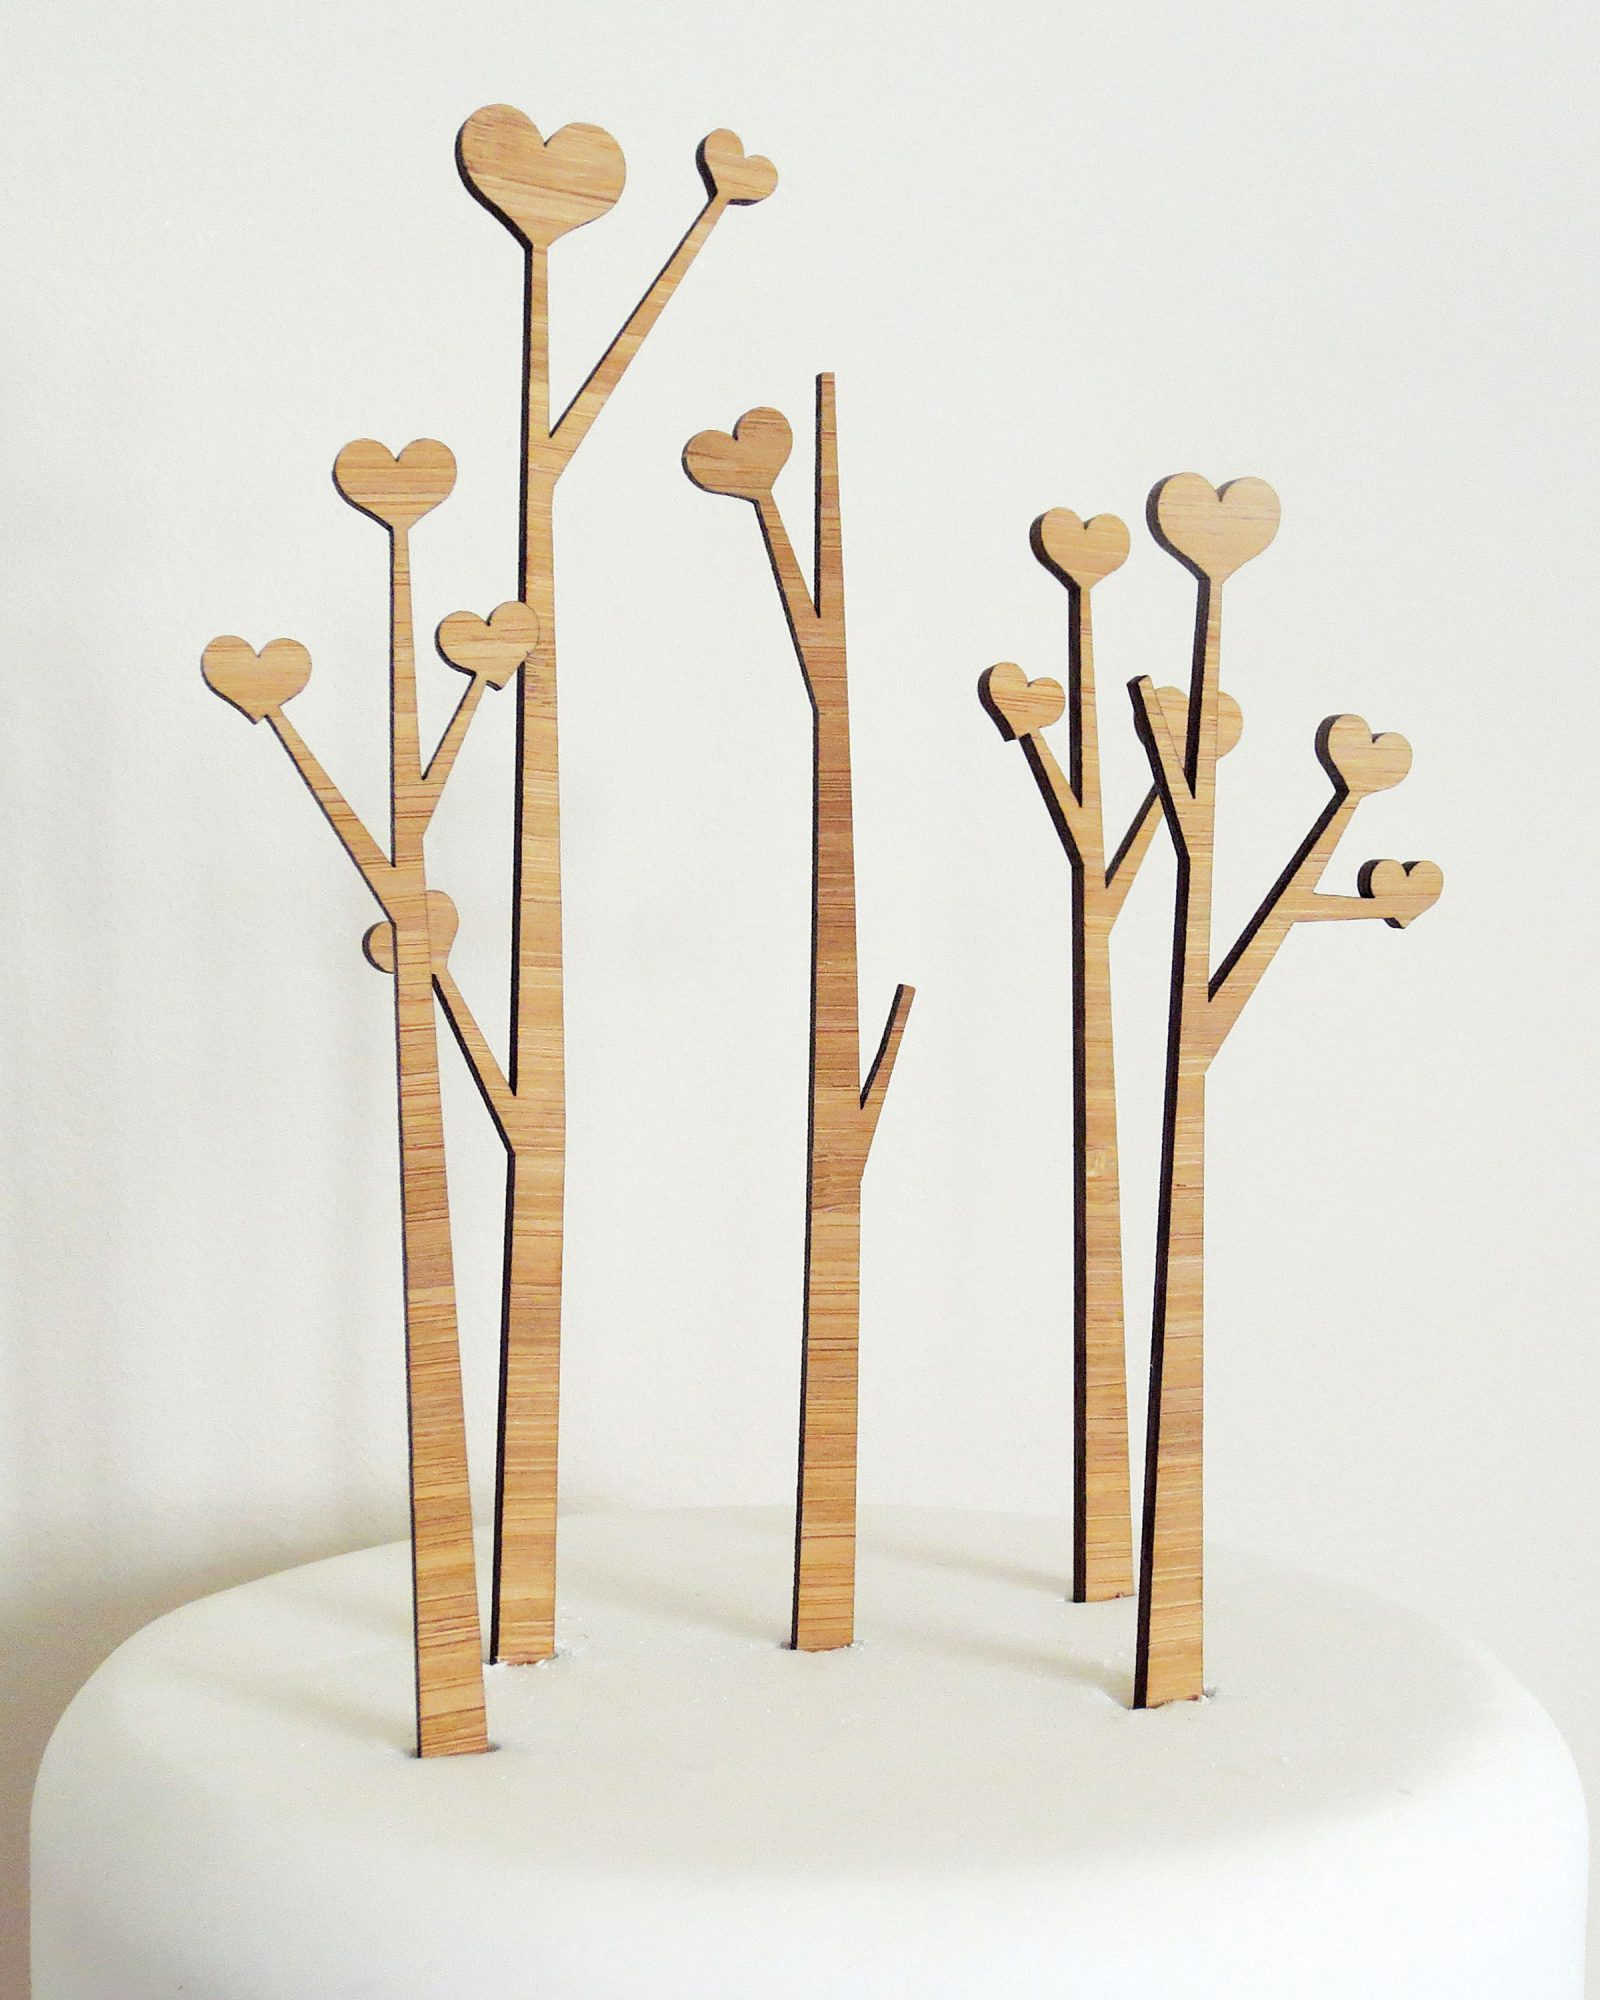 cake-toppers-cabin-cub-heart-trees-0814.jpg